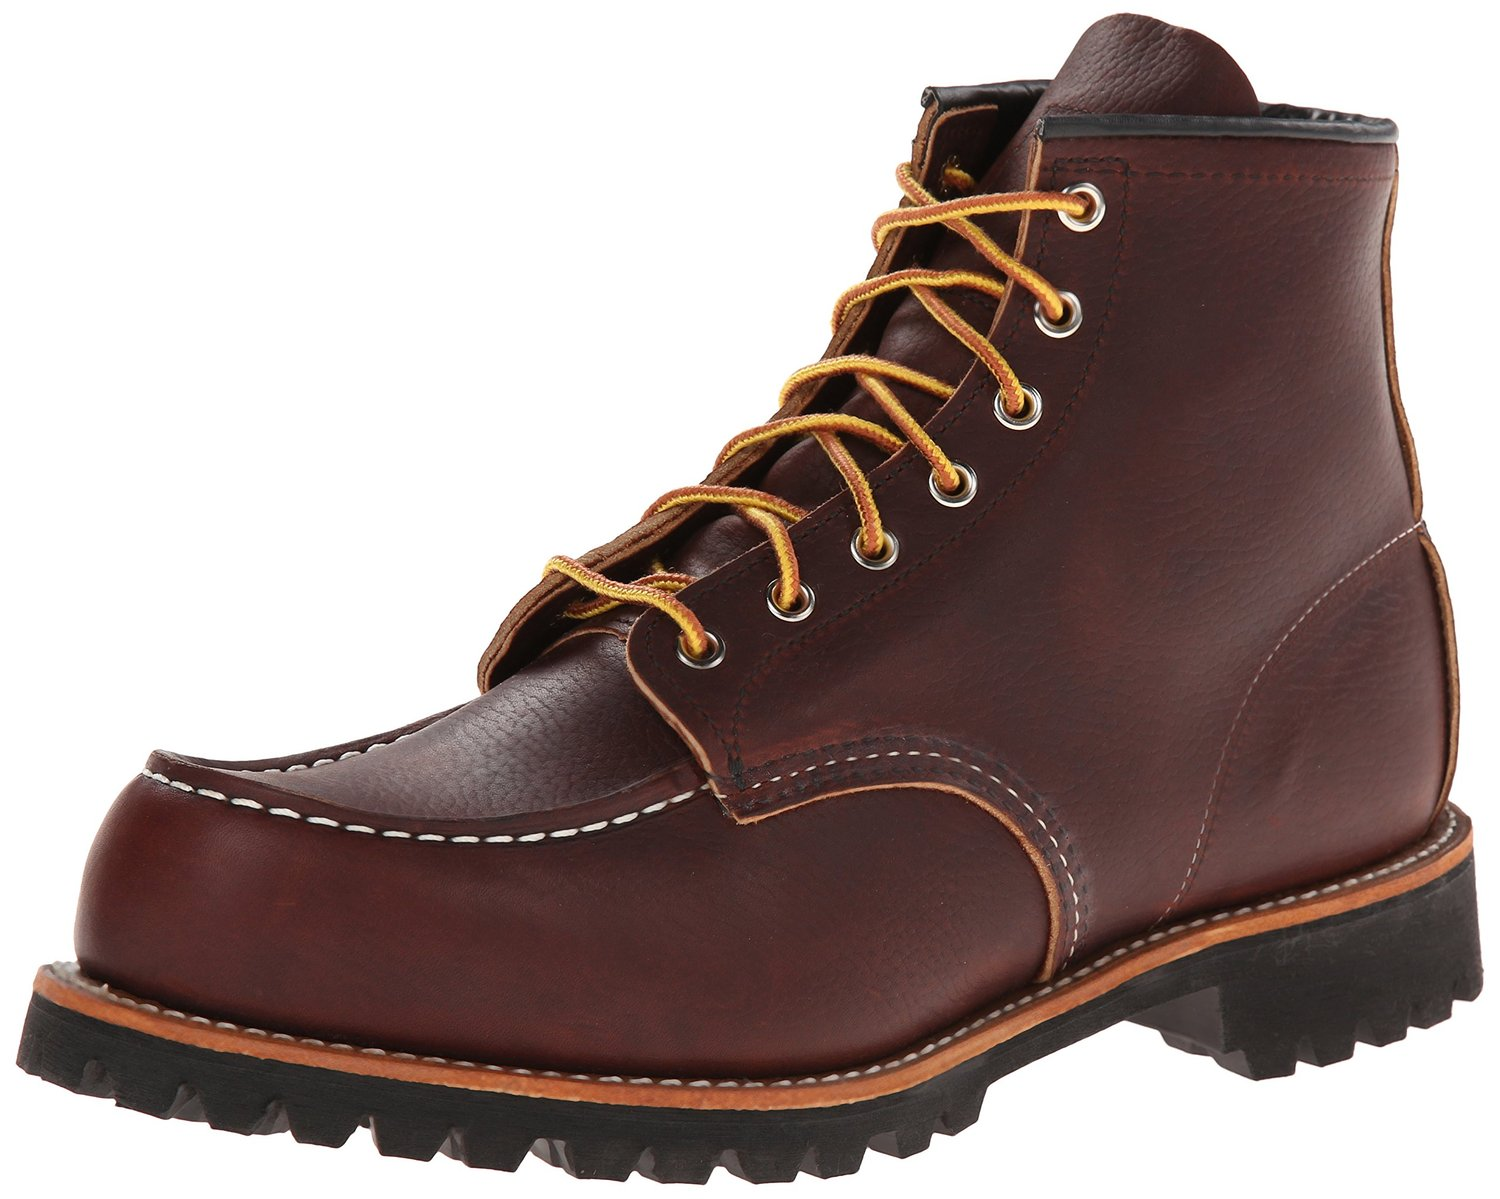 Red Wing Boots On Sale - Boot Yc